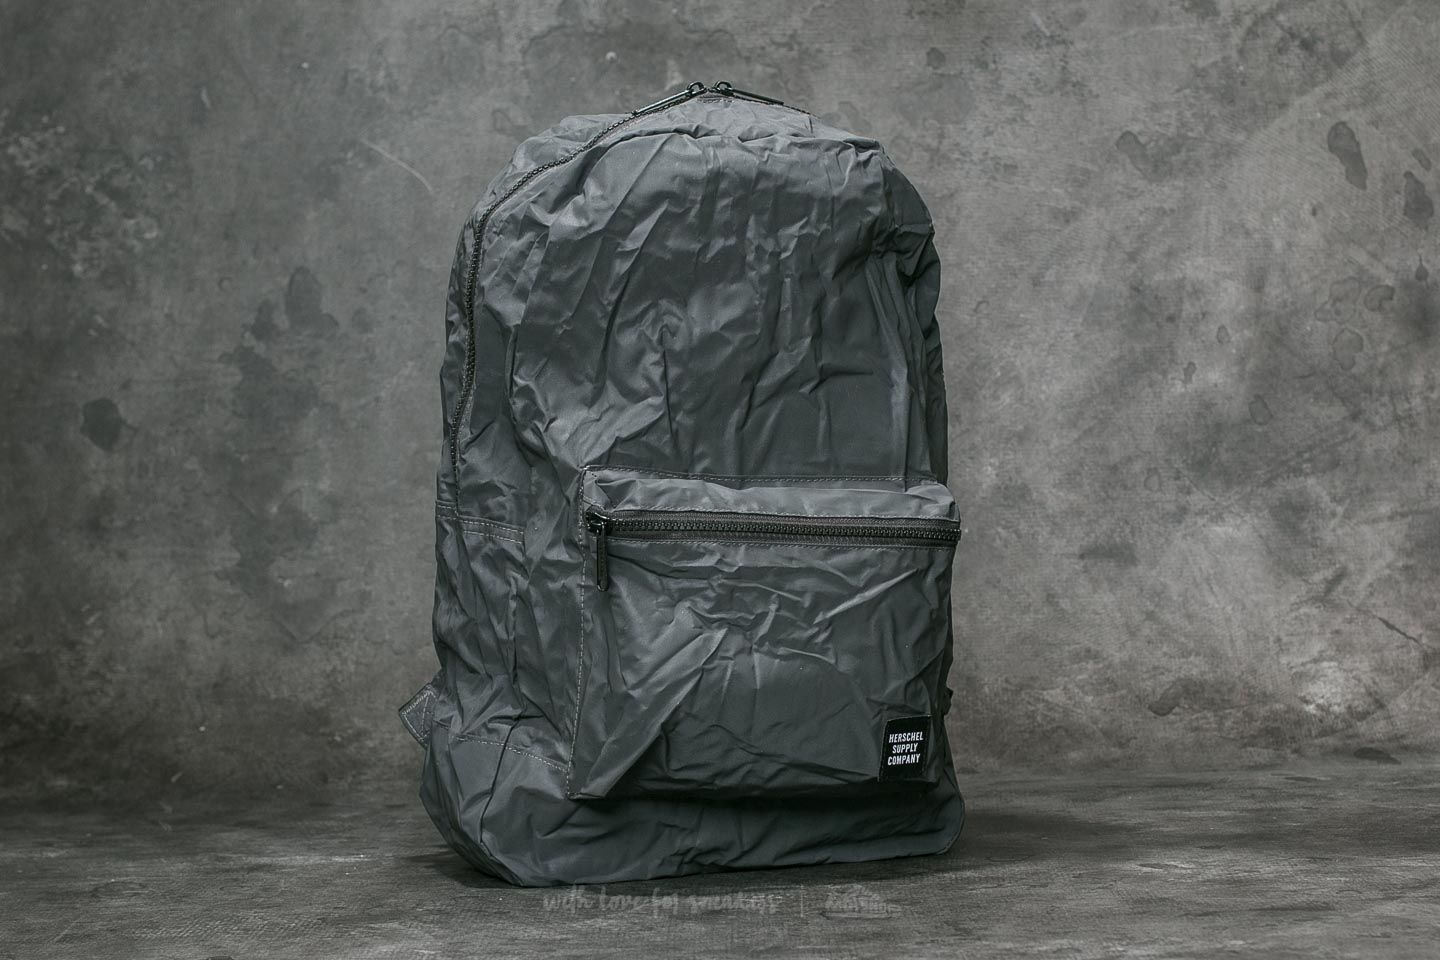 Herschel Supply Co. Daypack Backpack Black Reflective